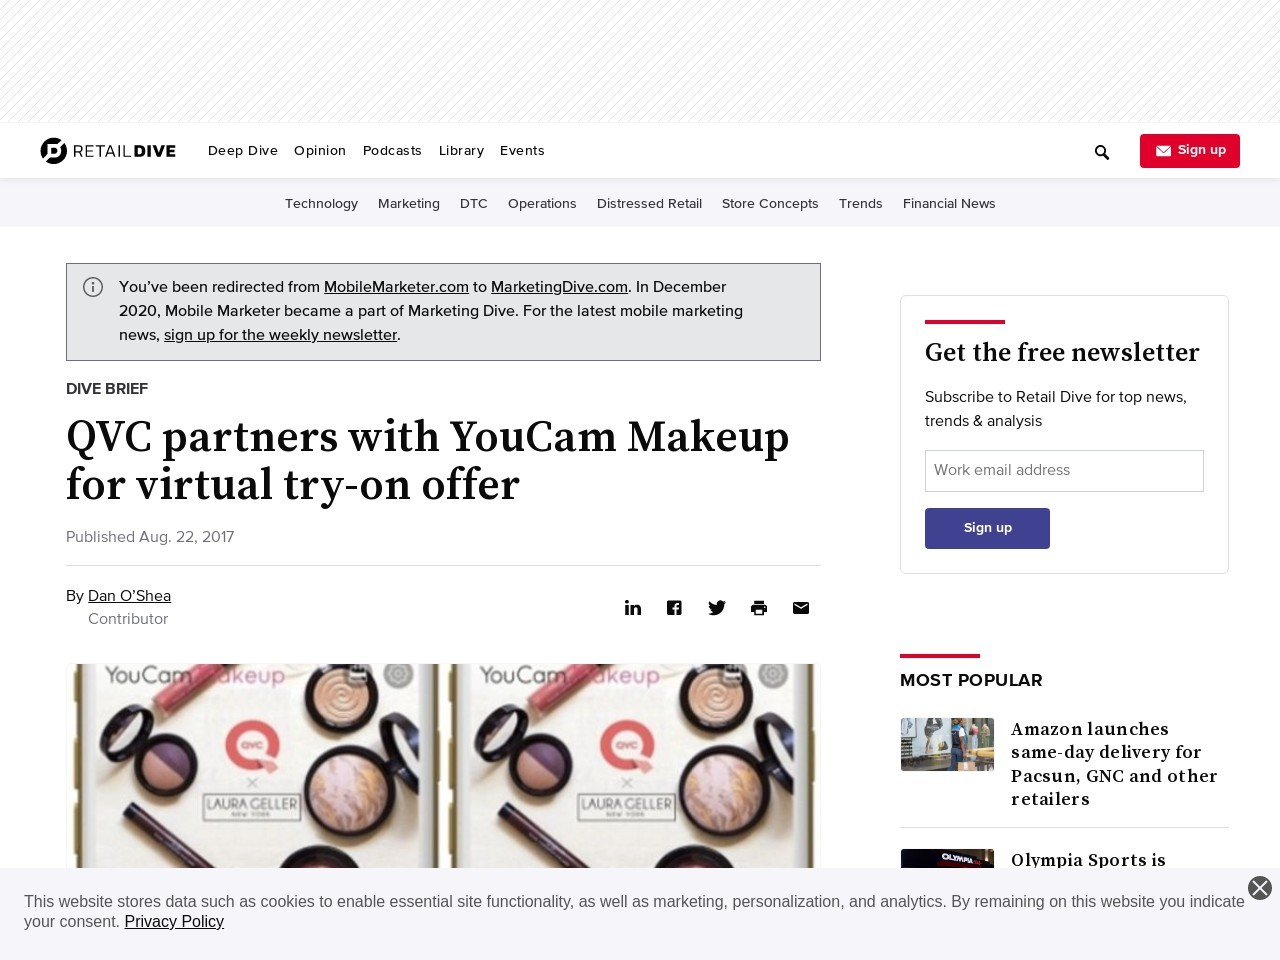 QVC partners with YouCam Makeup for virtual try-on offer